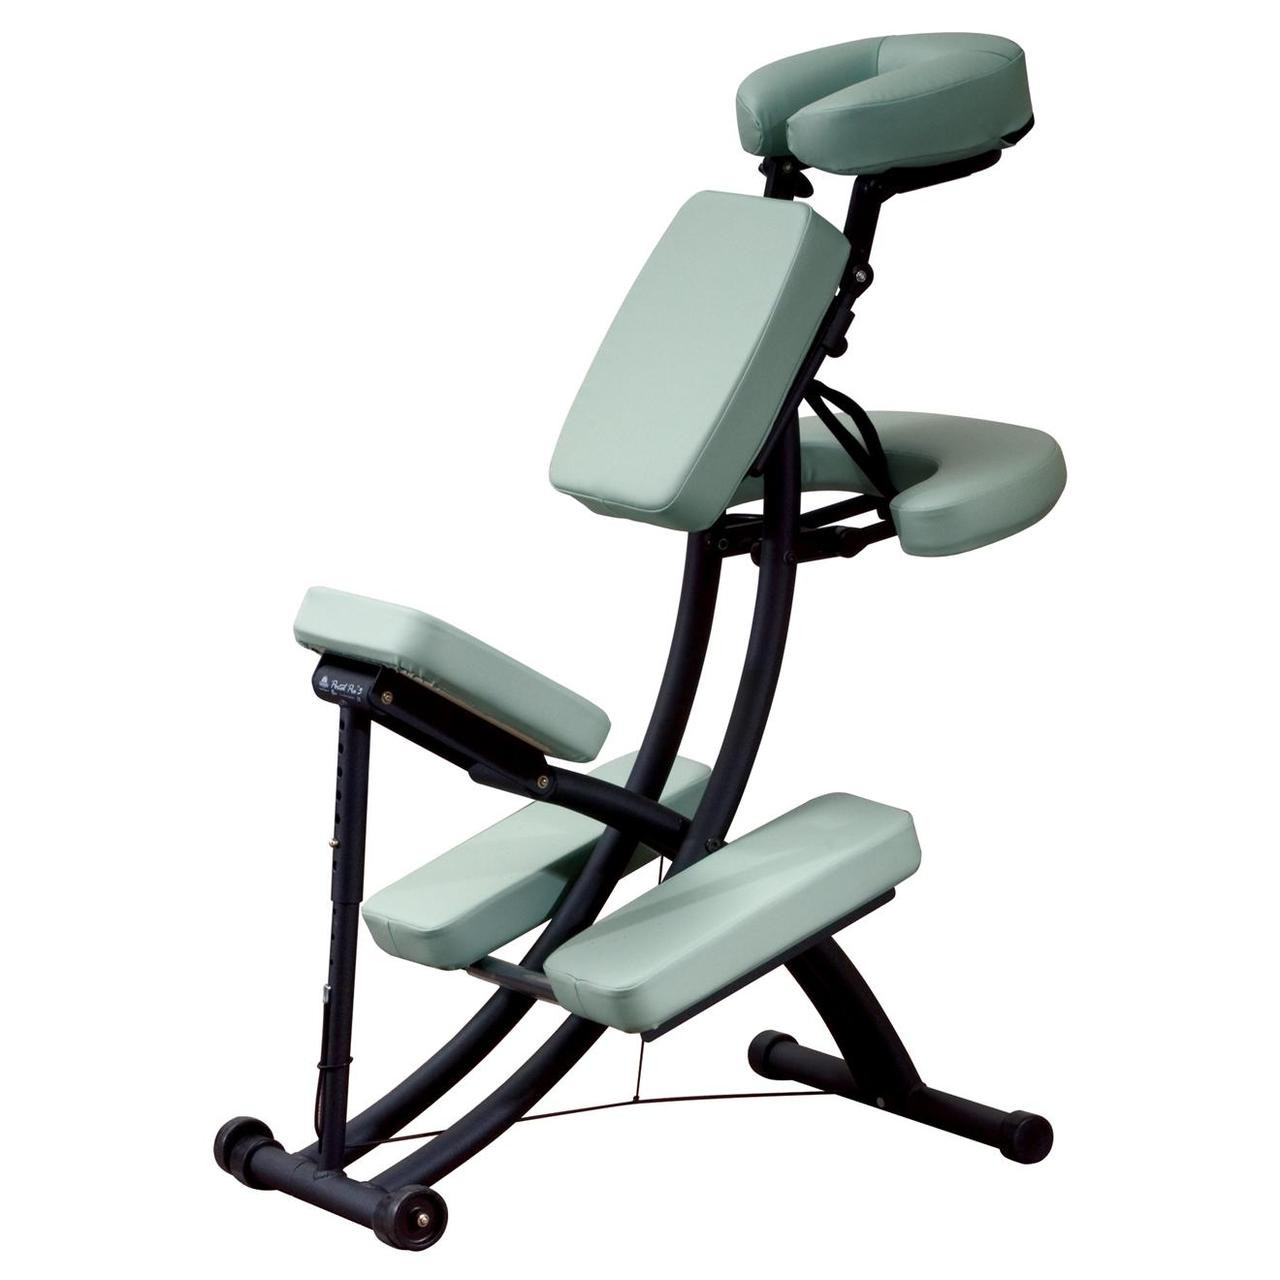 chair dr chairs massage relaxology approved